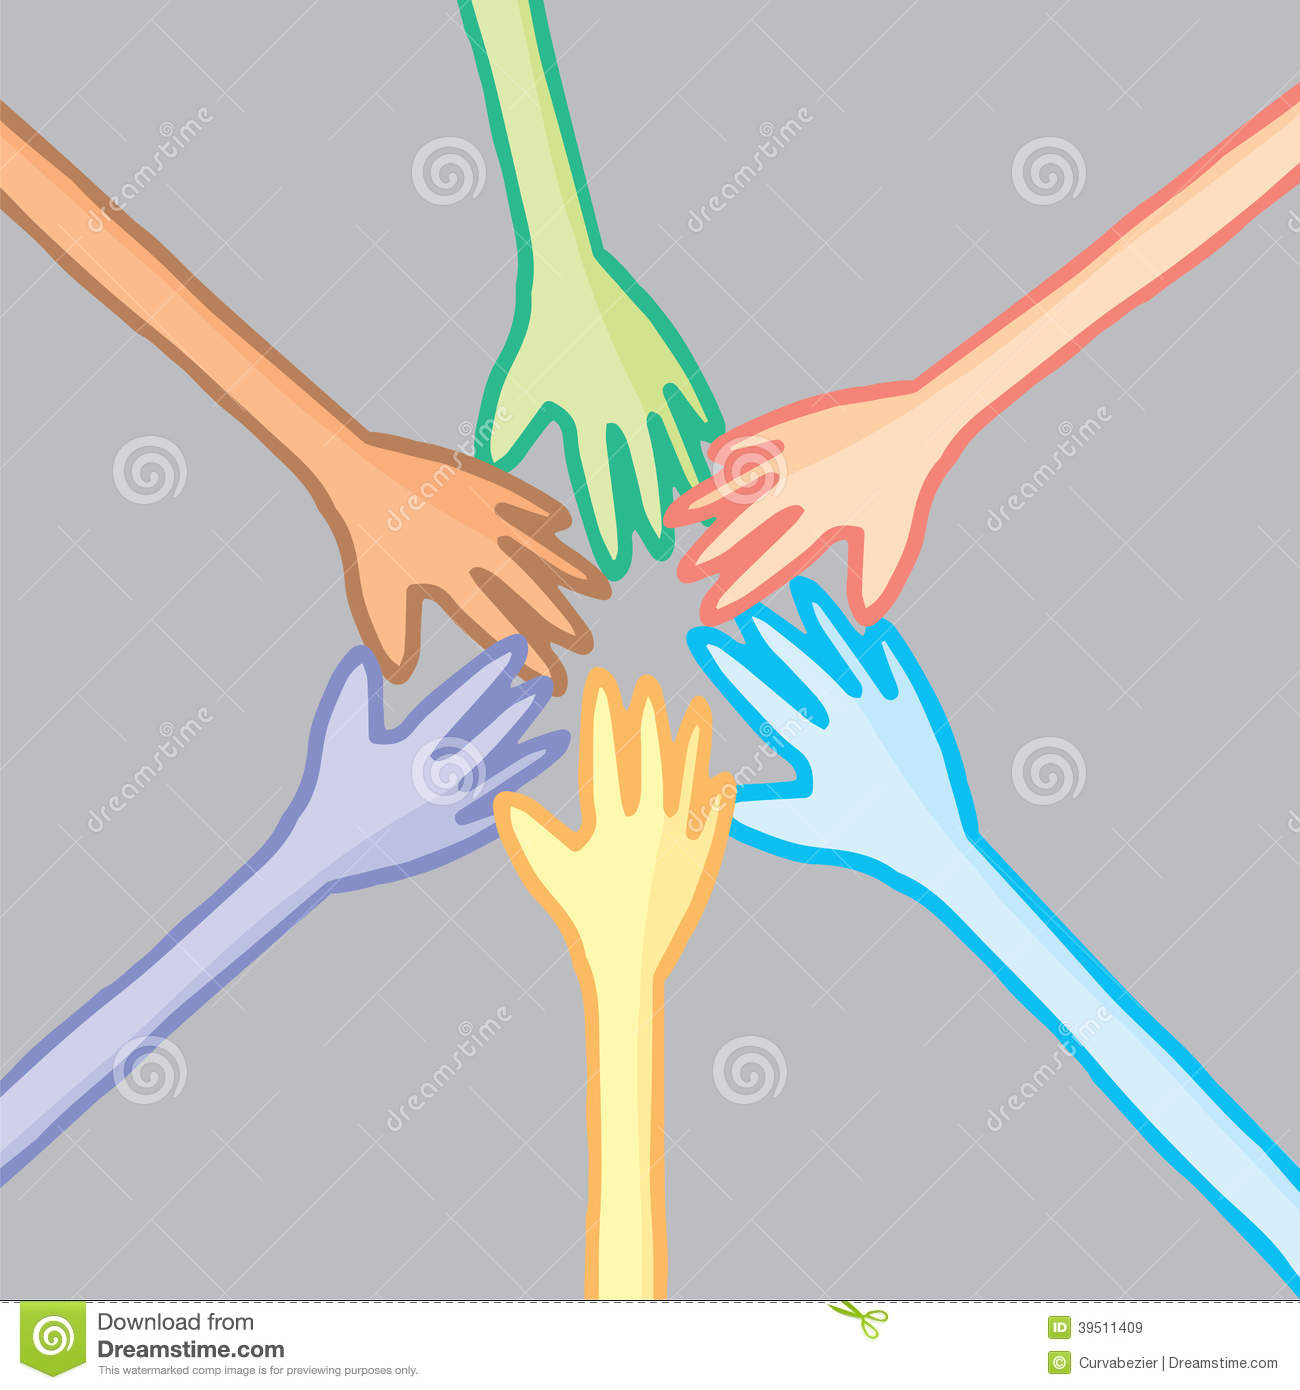 Six colorful hands in cooperation